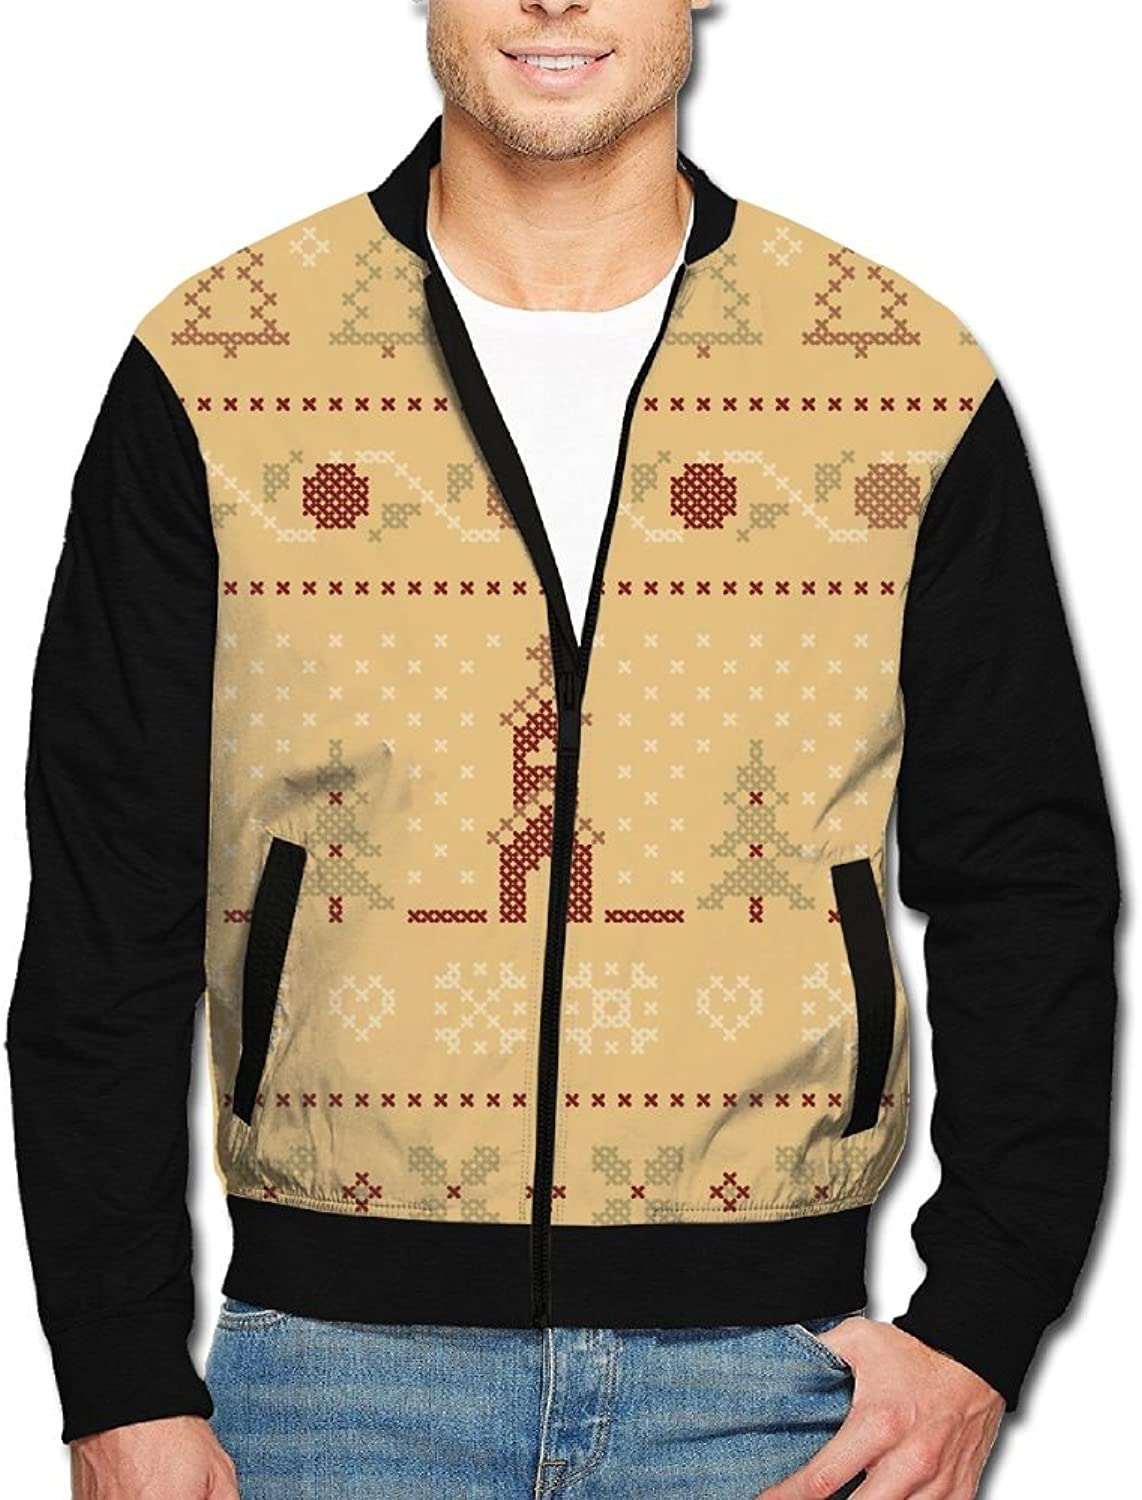 04892bd1d3 Christmas Ugly Xmas Zip Up Jacket Hoodie With Zipper For For For Men 181a88